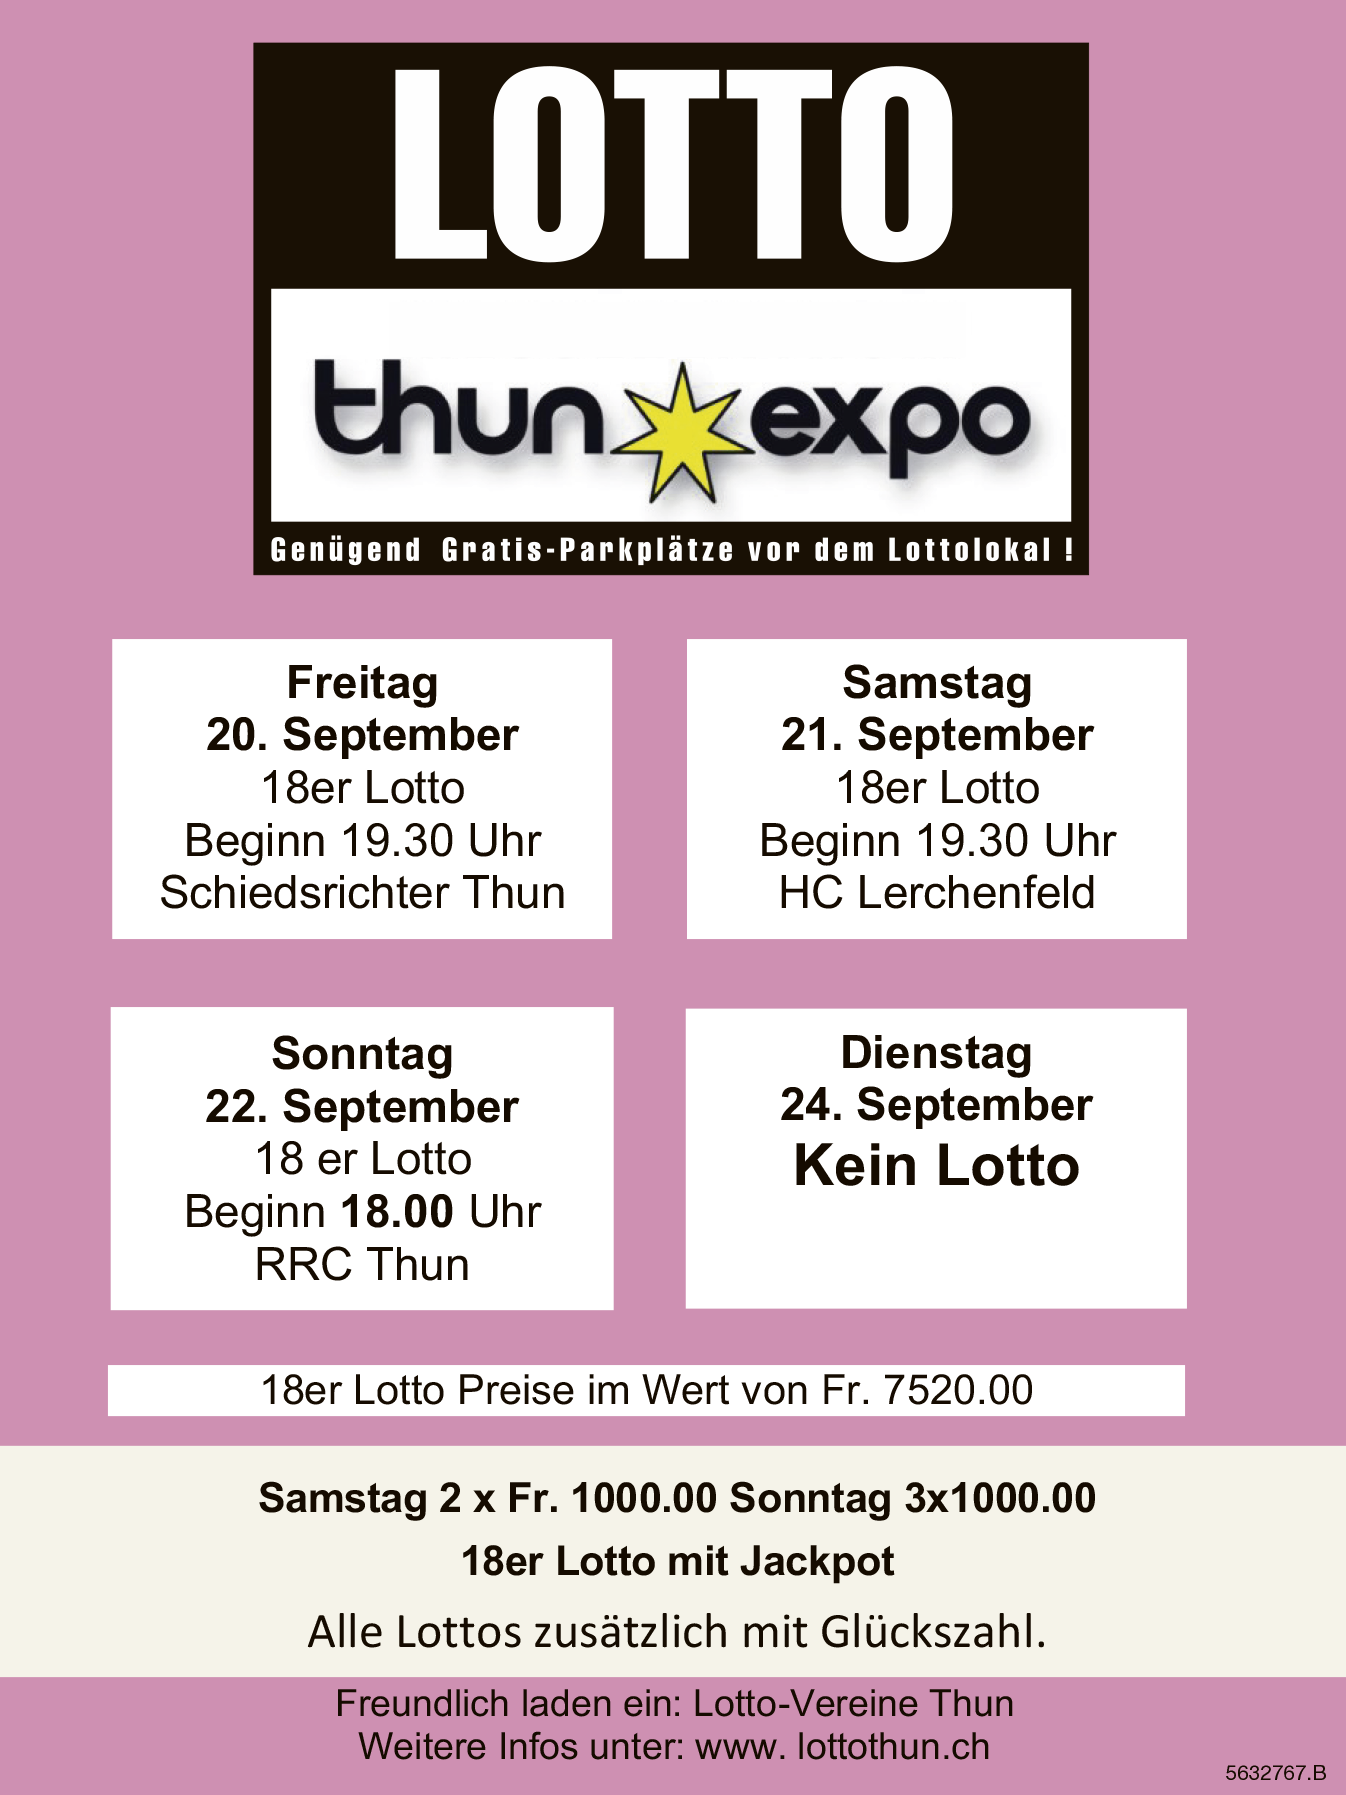 LOTTO Thun Expo - 27./28./29. September und 1. Oktober